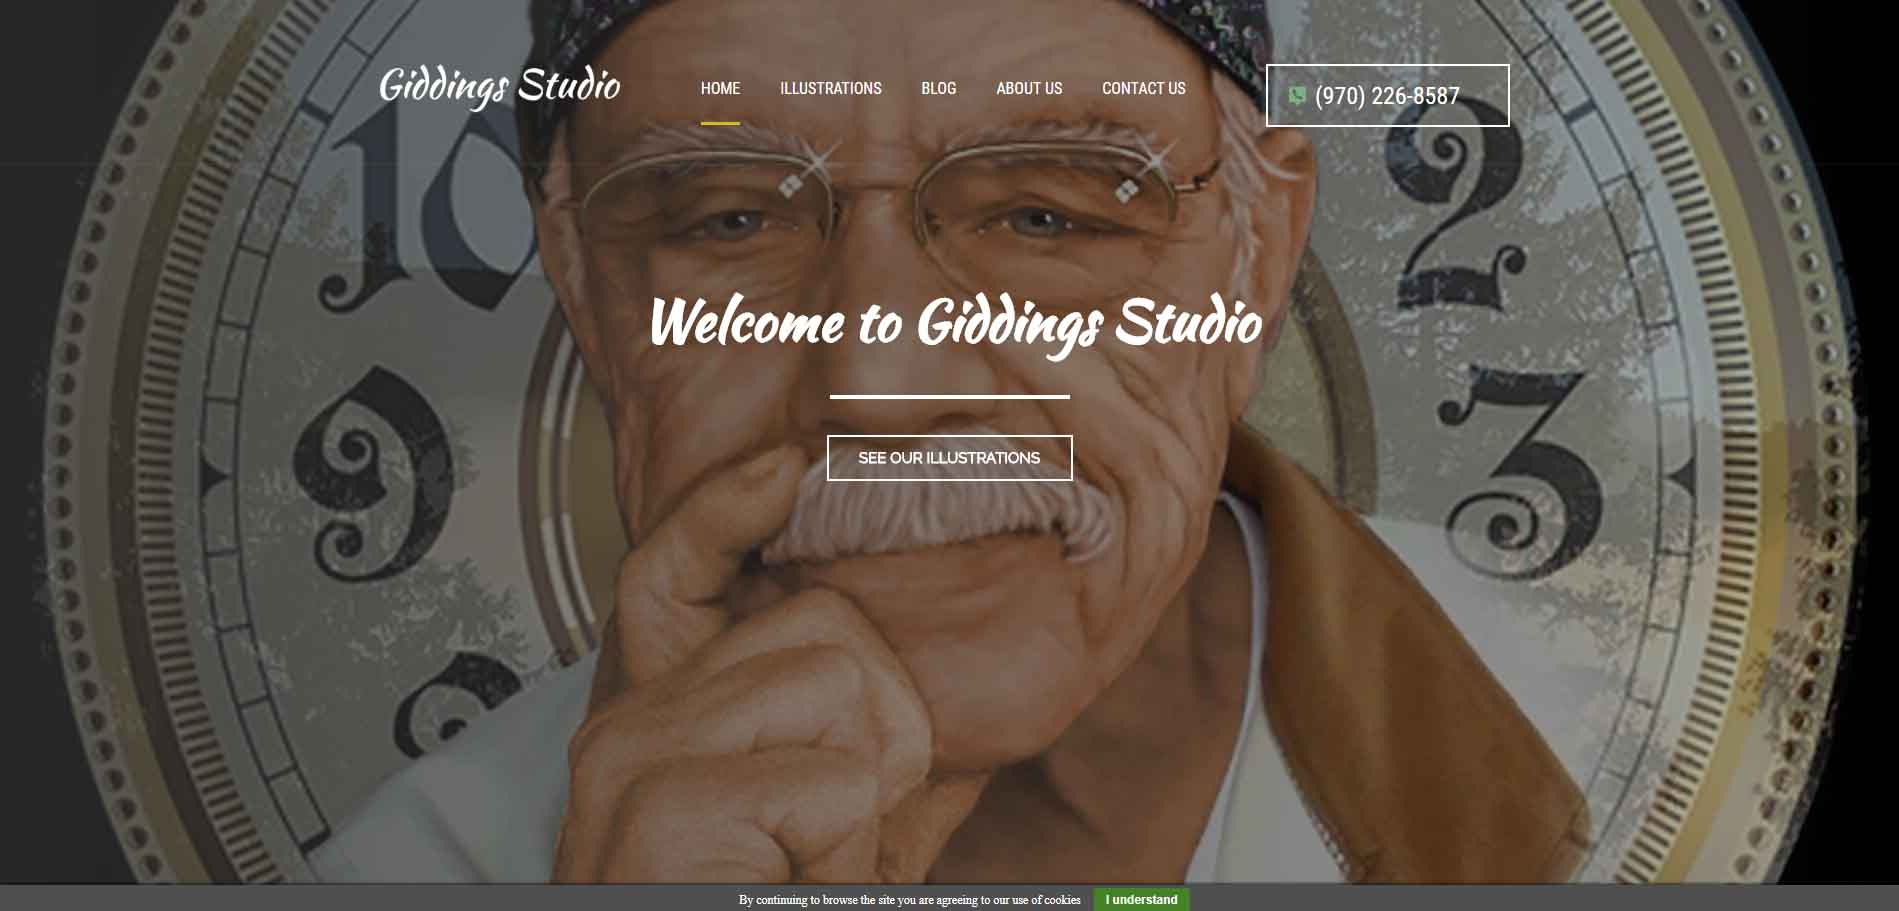 Giddings Studio